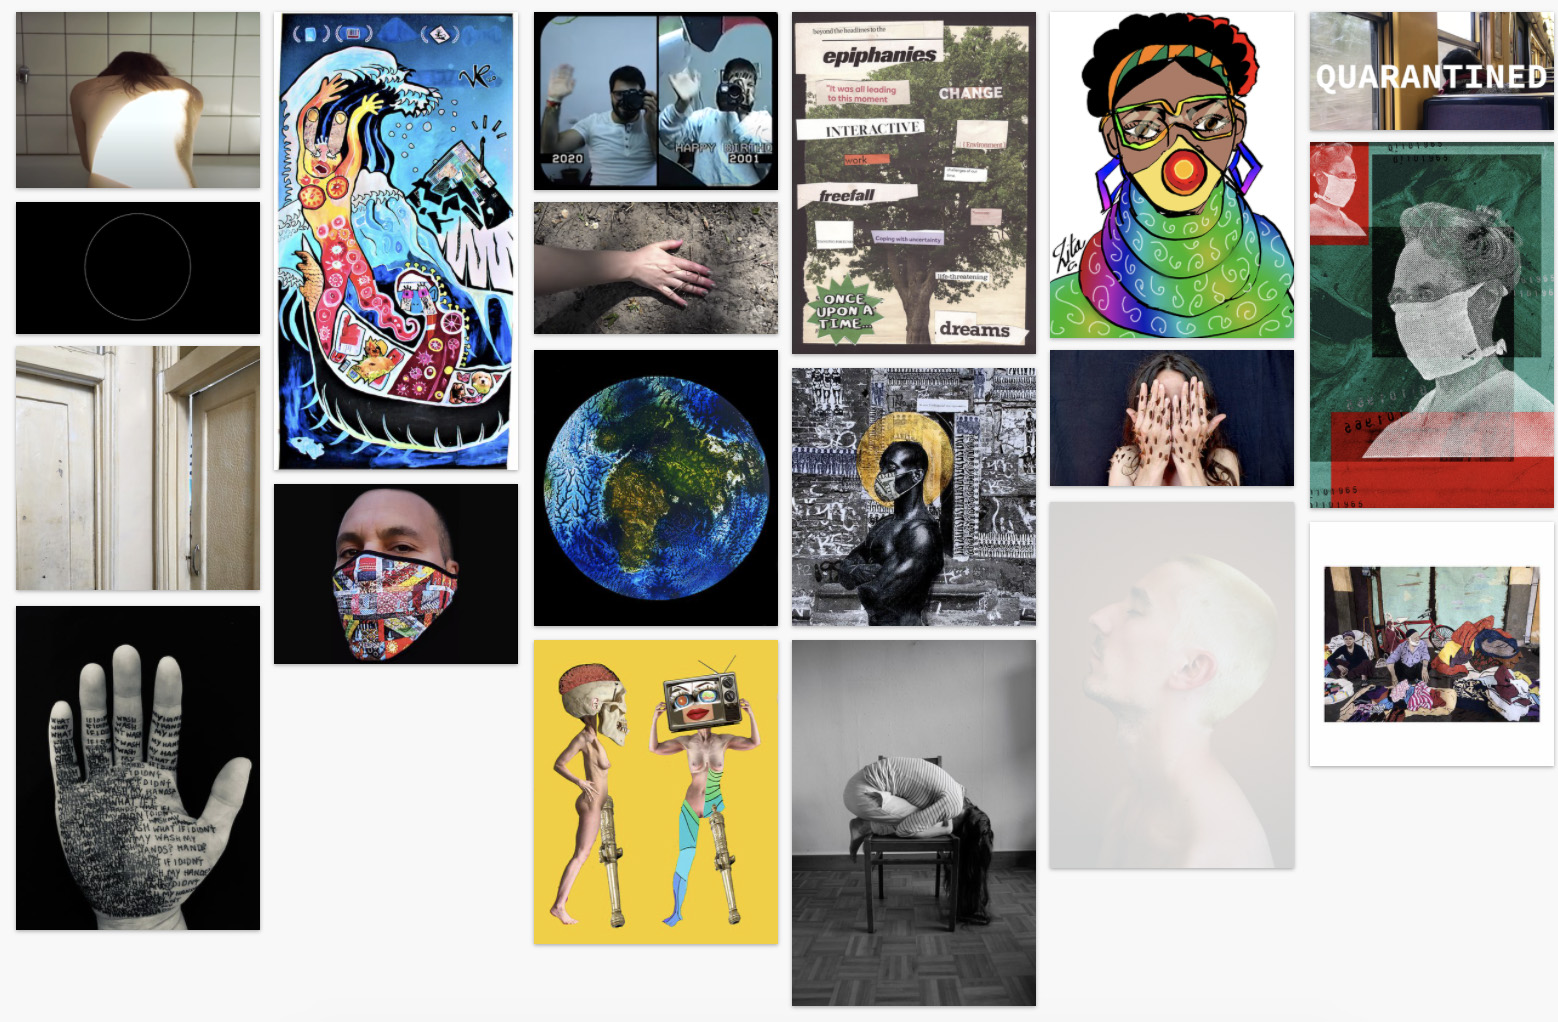 grid of thumbnails of submissions from artist in group exhibition